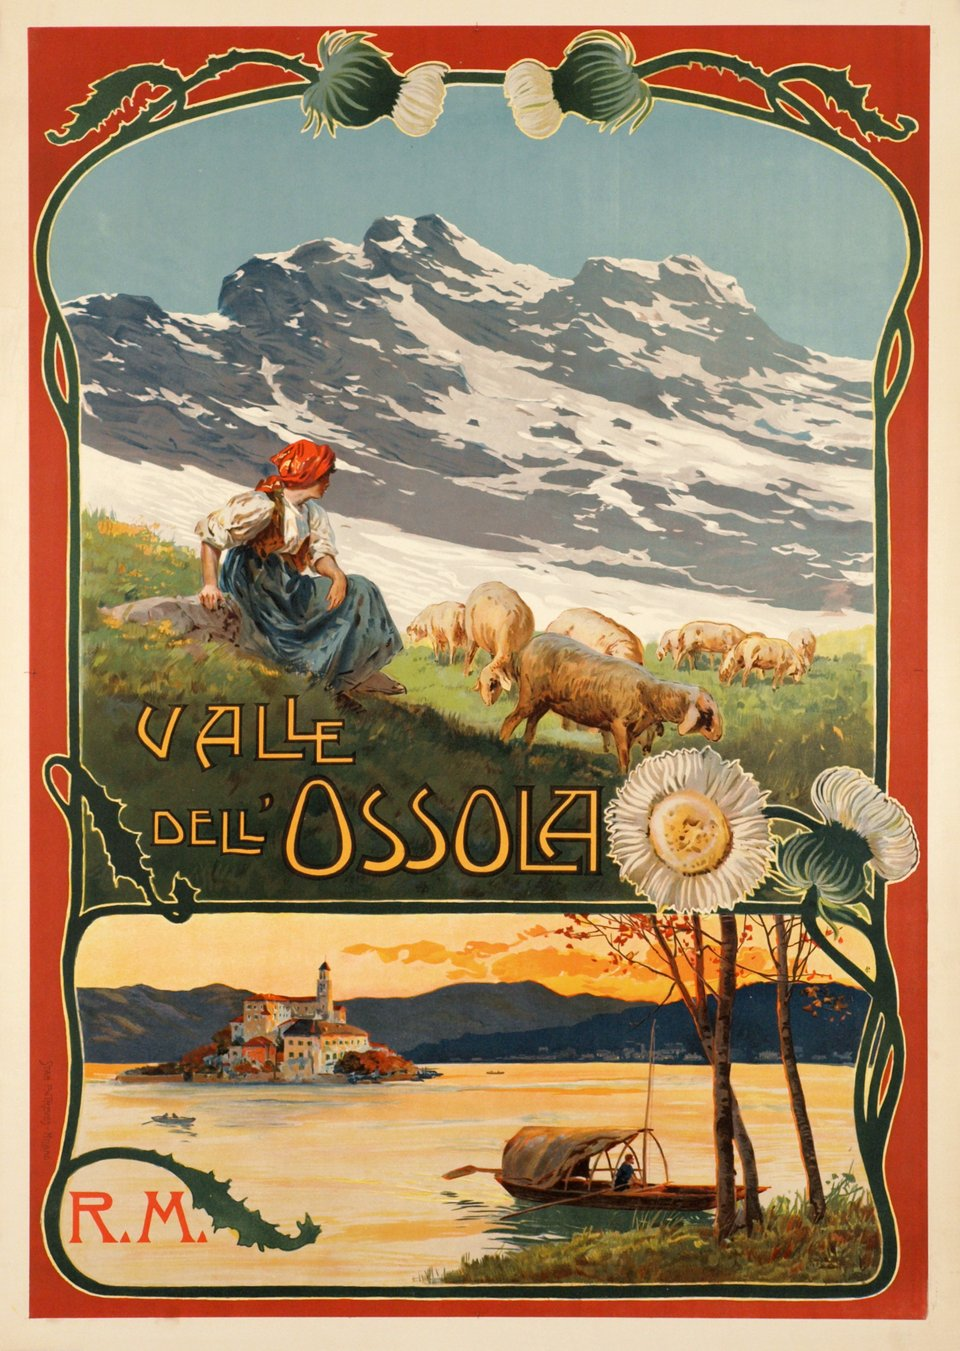 Valle dell Ossola, R.M. – Vintage poster – ANONYMOUS – 1900